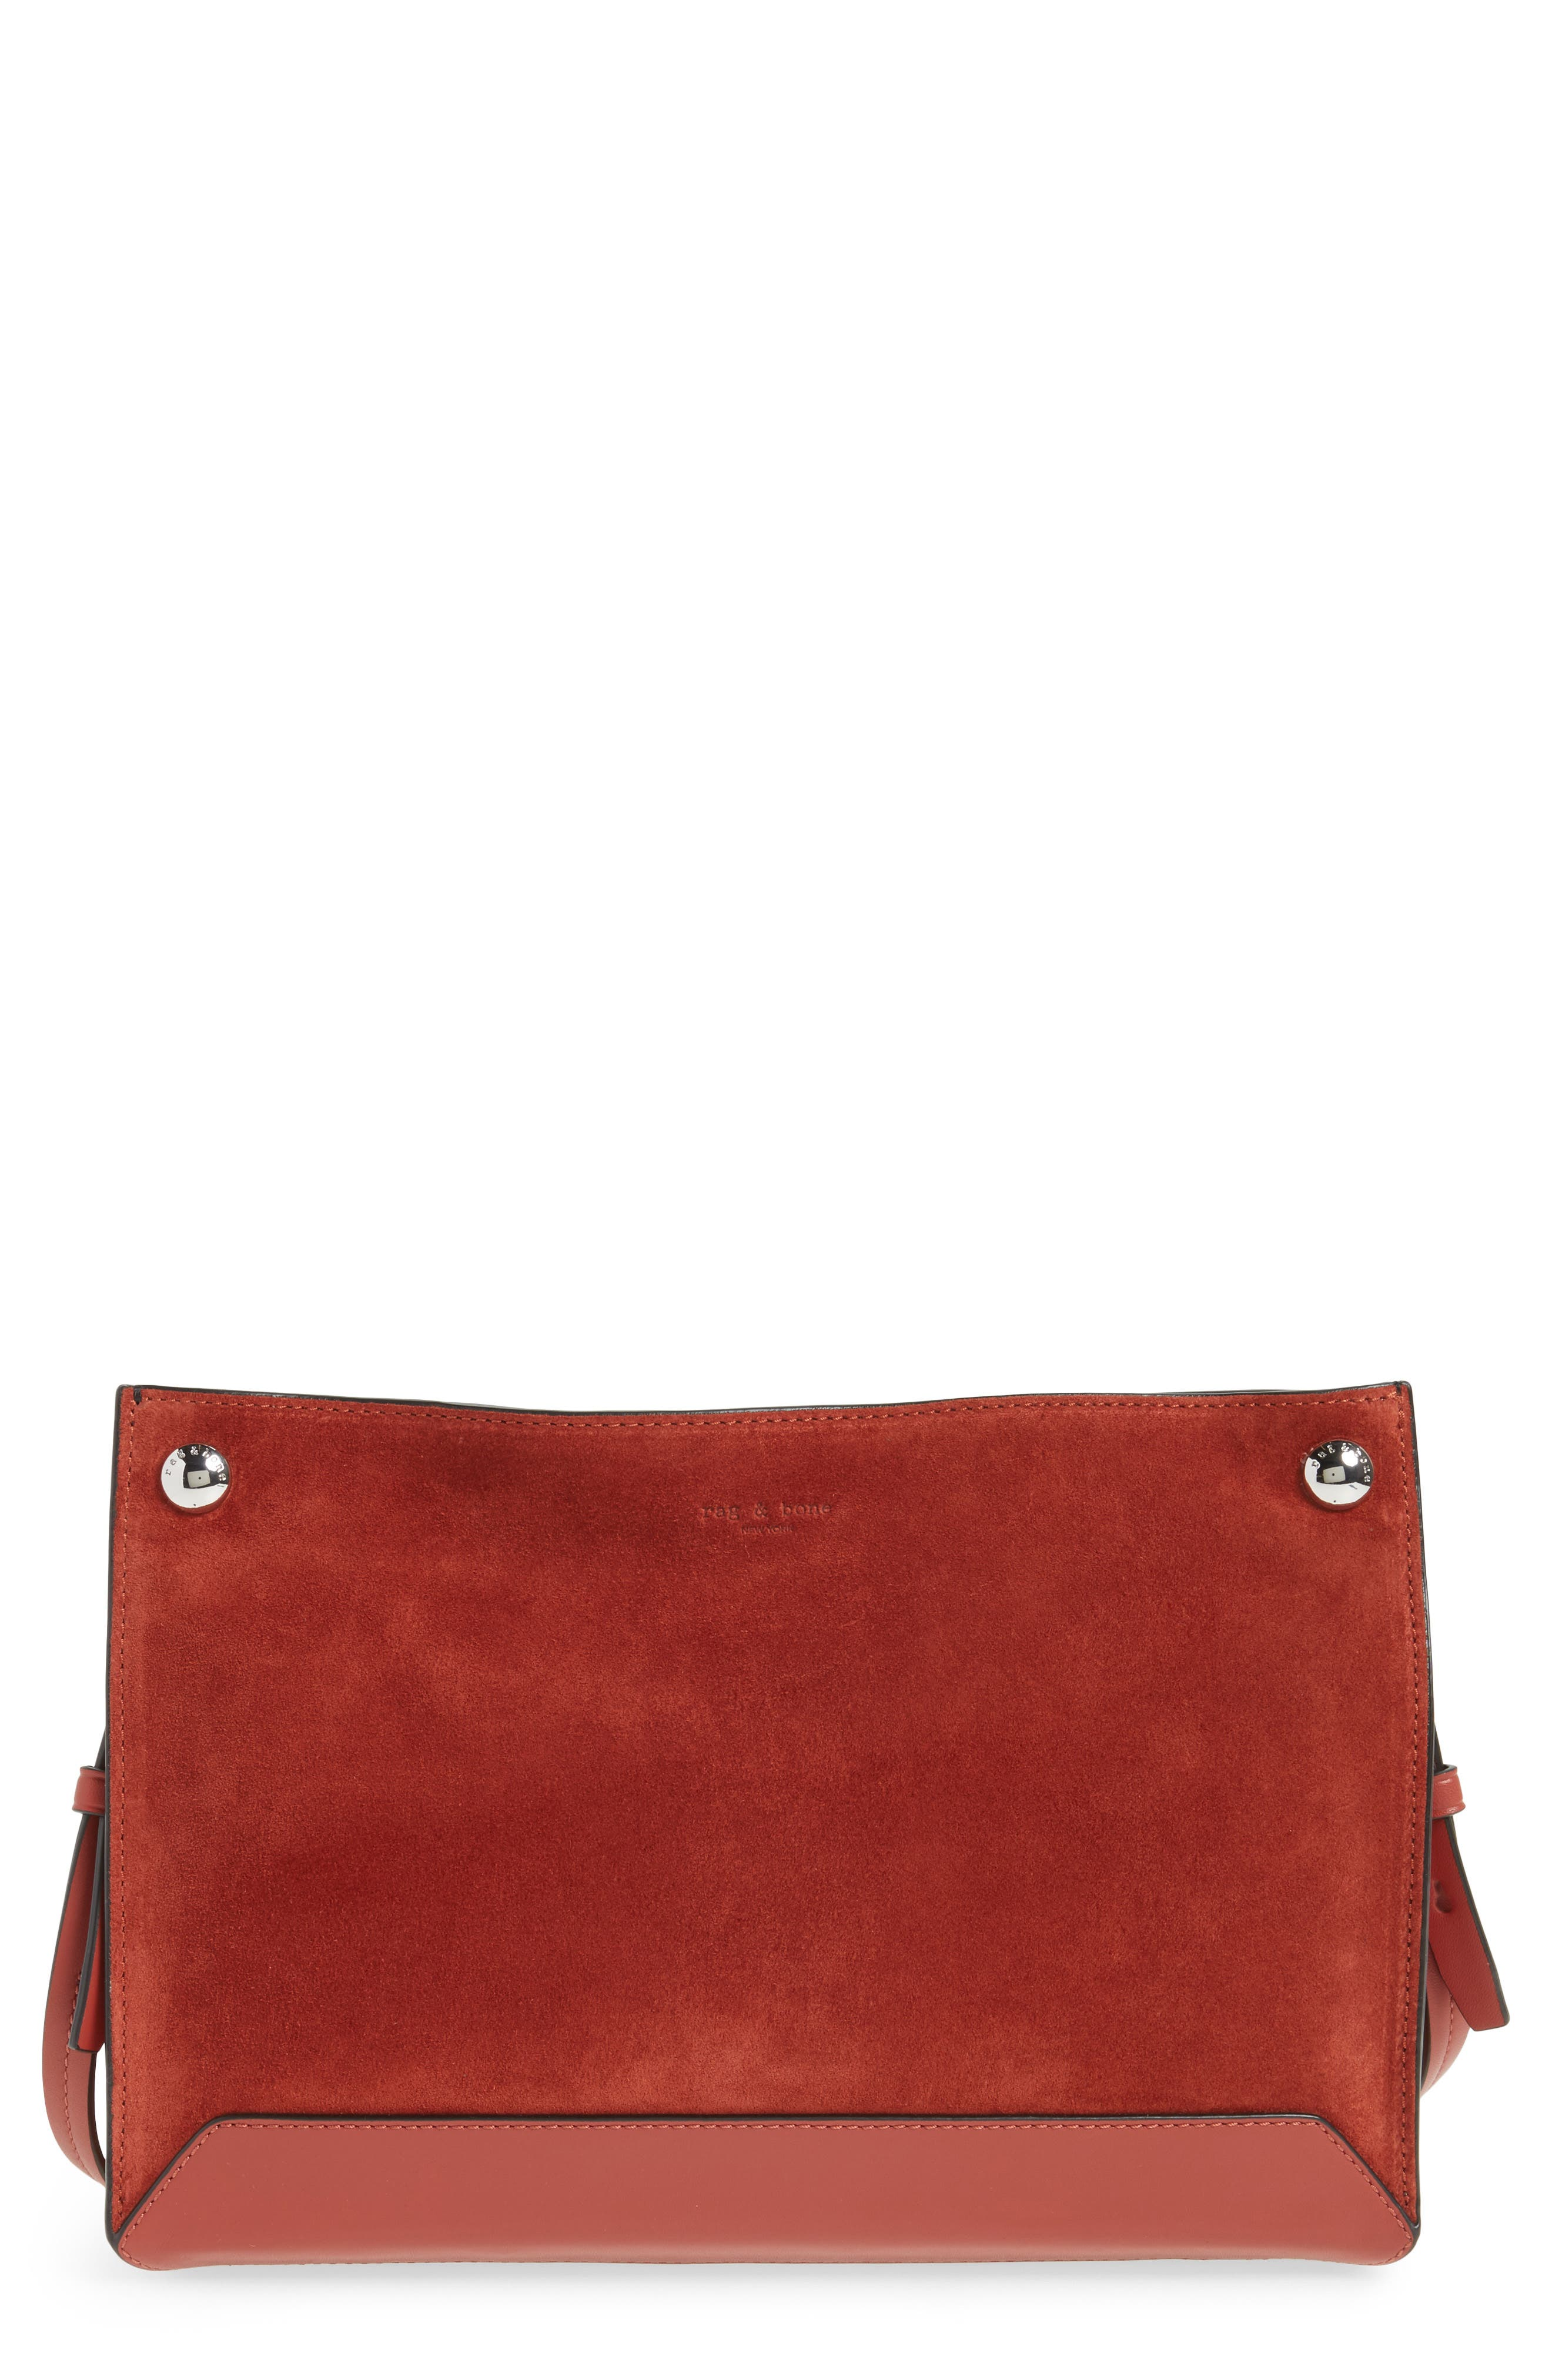 Compass Suede Crossbody Bag,                             Main thumbnail 1, color,                             629